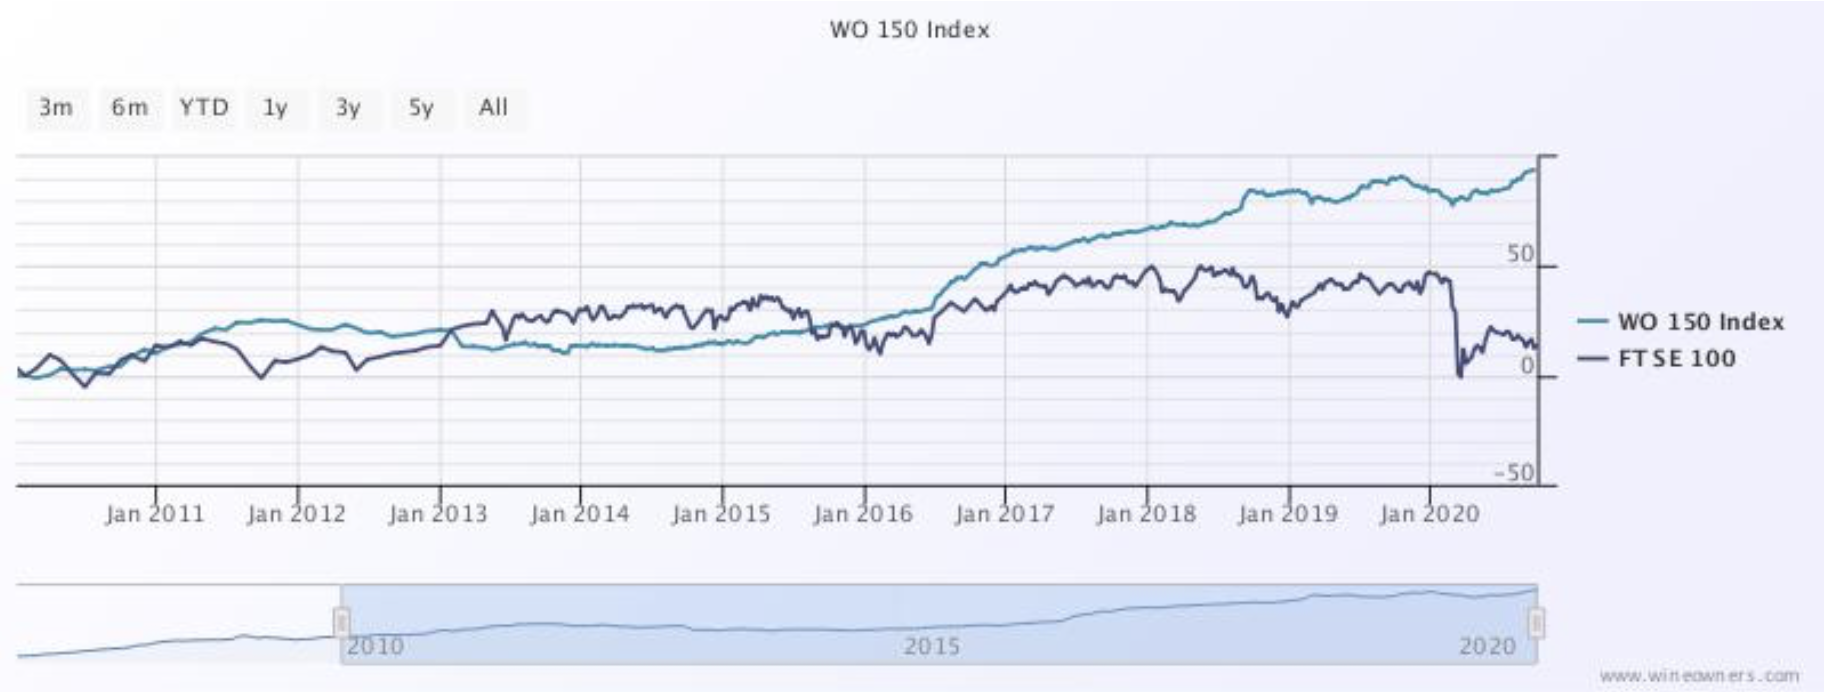 Wine Owners - WO150 Index Vs FTSE 100 - Sept 2020